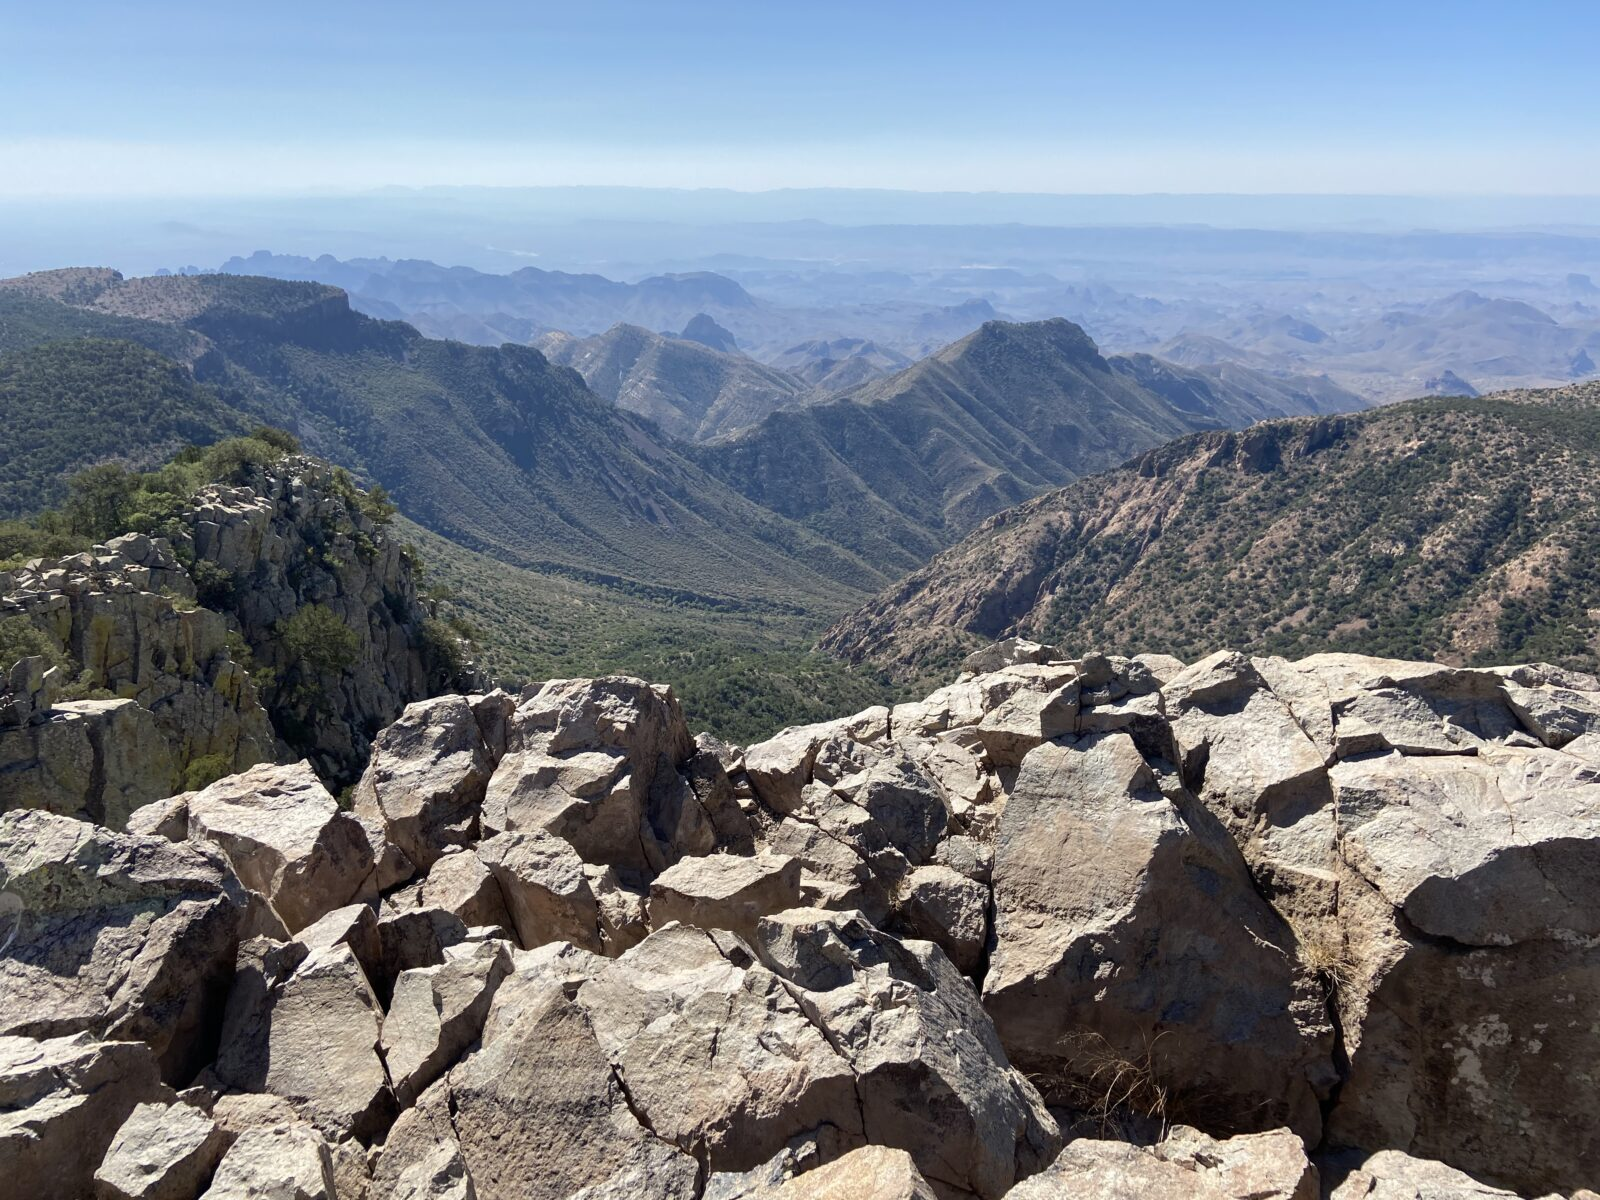 The view of Big Bend National Park from Emory Peak is truly special.